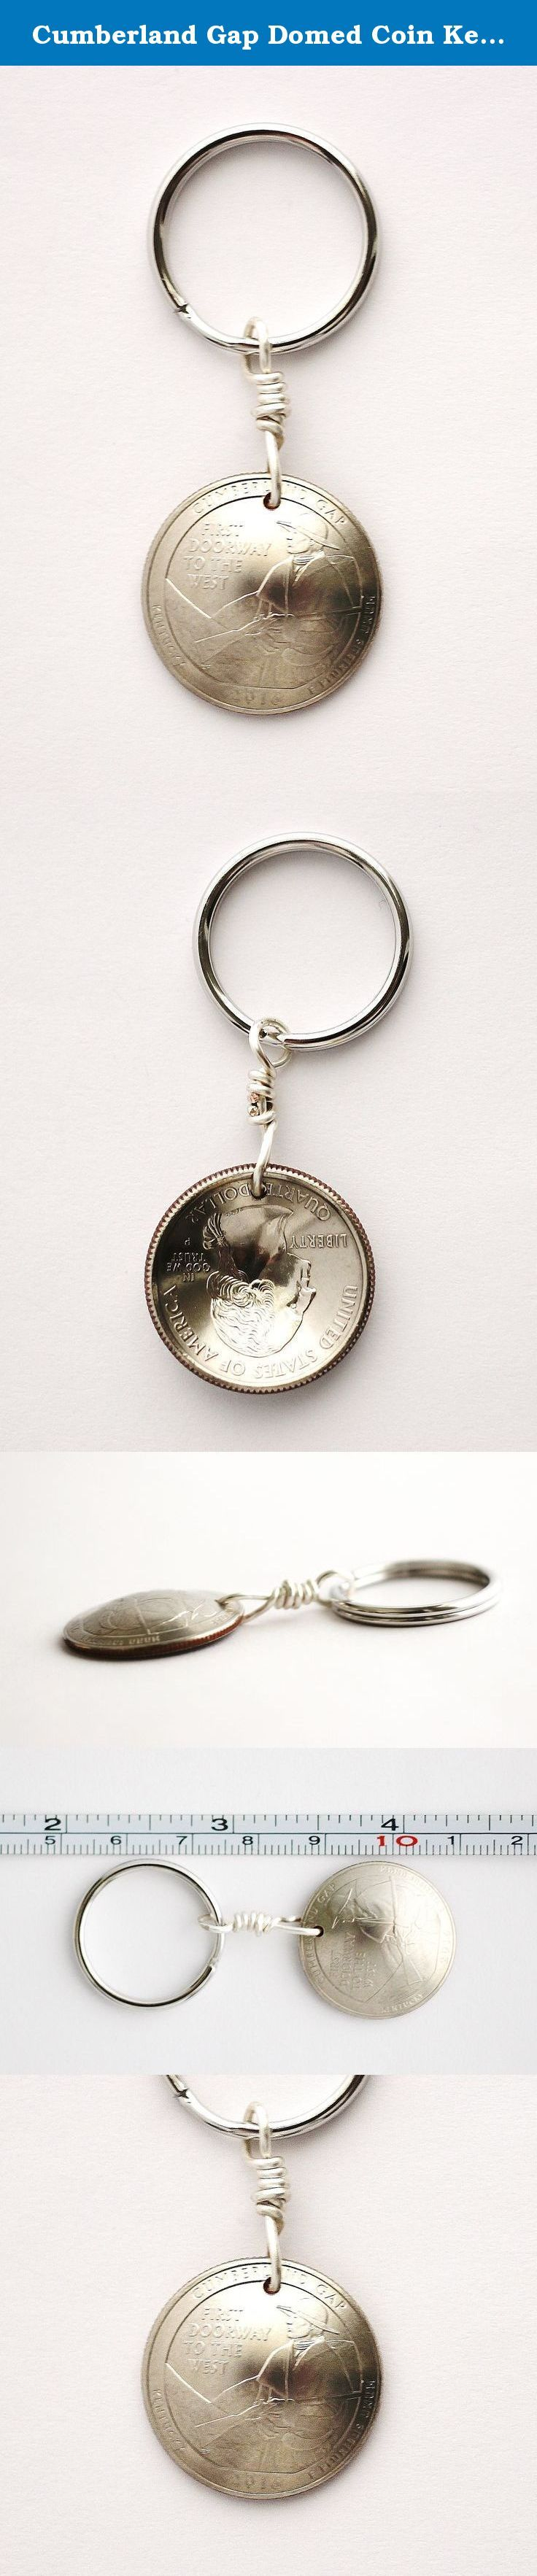 Cumberland Gap Domed Coin Keychain, U.S. Quarter Kentucky Key Ring, 2016. This quarter coin keychain was made from an authentic U.S State quarter dollar coin and is part of the America the Beautiful series. This U.S. quarter coin depicts The Cumberland Gap National Historical Park, Kentucky, and is dated 2016. The quarter has a detailed image of a frontiersman gazing through the Gap to the west. FIRST DOORWAY TO THE WEST is printed on the quarter coin. After I drilled the coin, I cleaned…